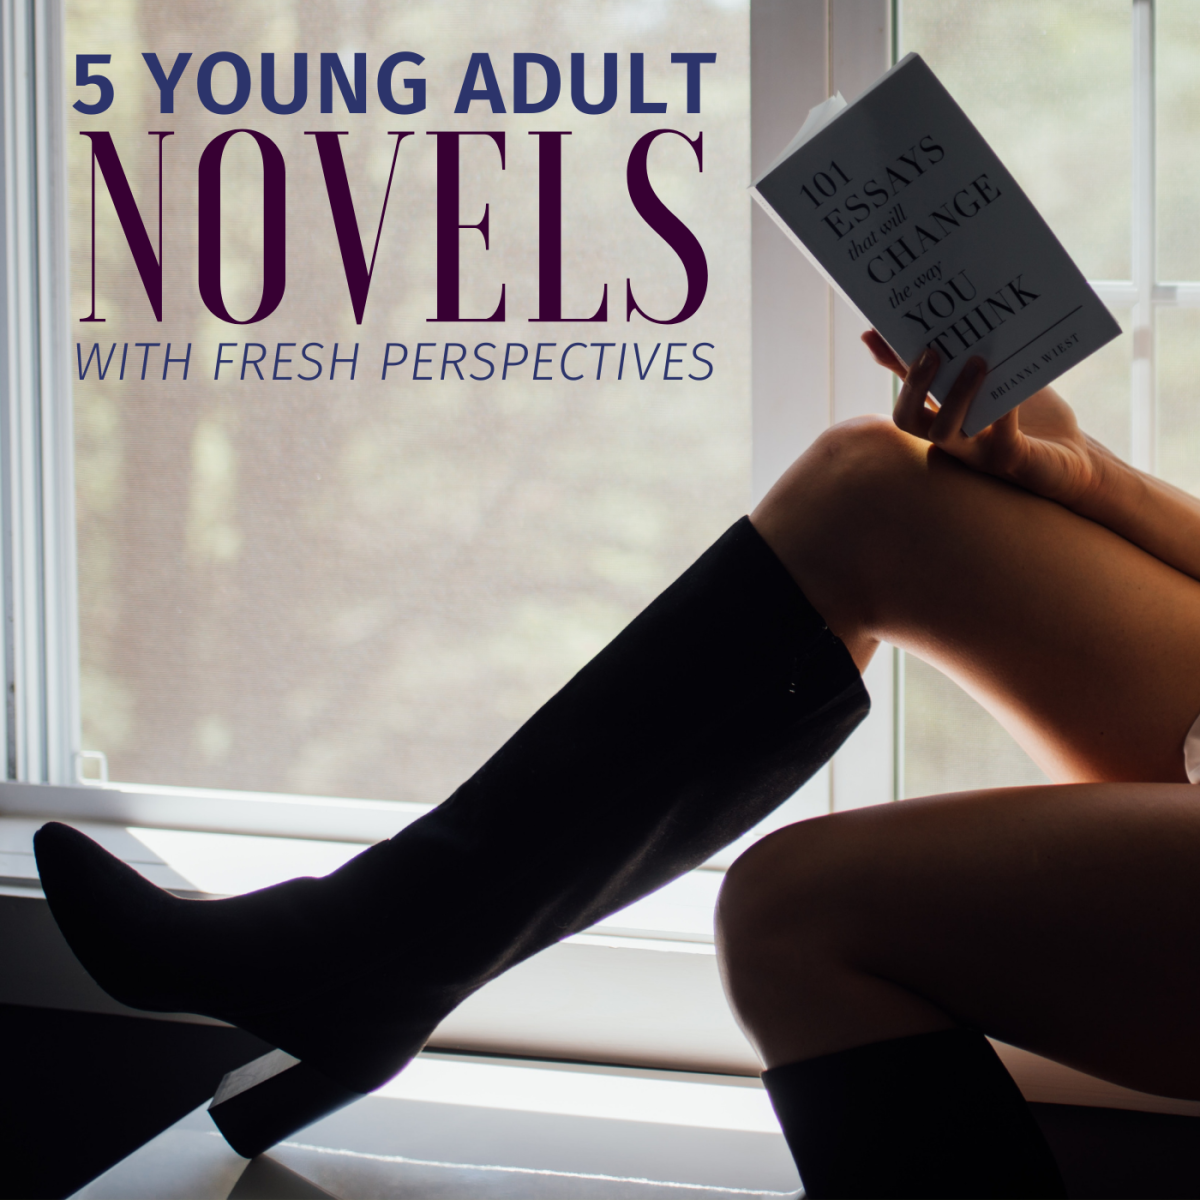 These Y.A. novels come with culturally relevant themes and center voices we don't here from often enough in modern fiction.